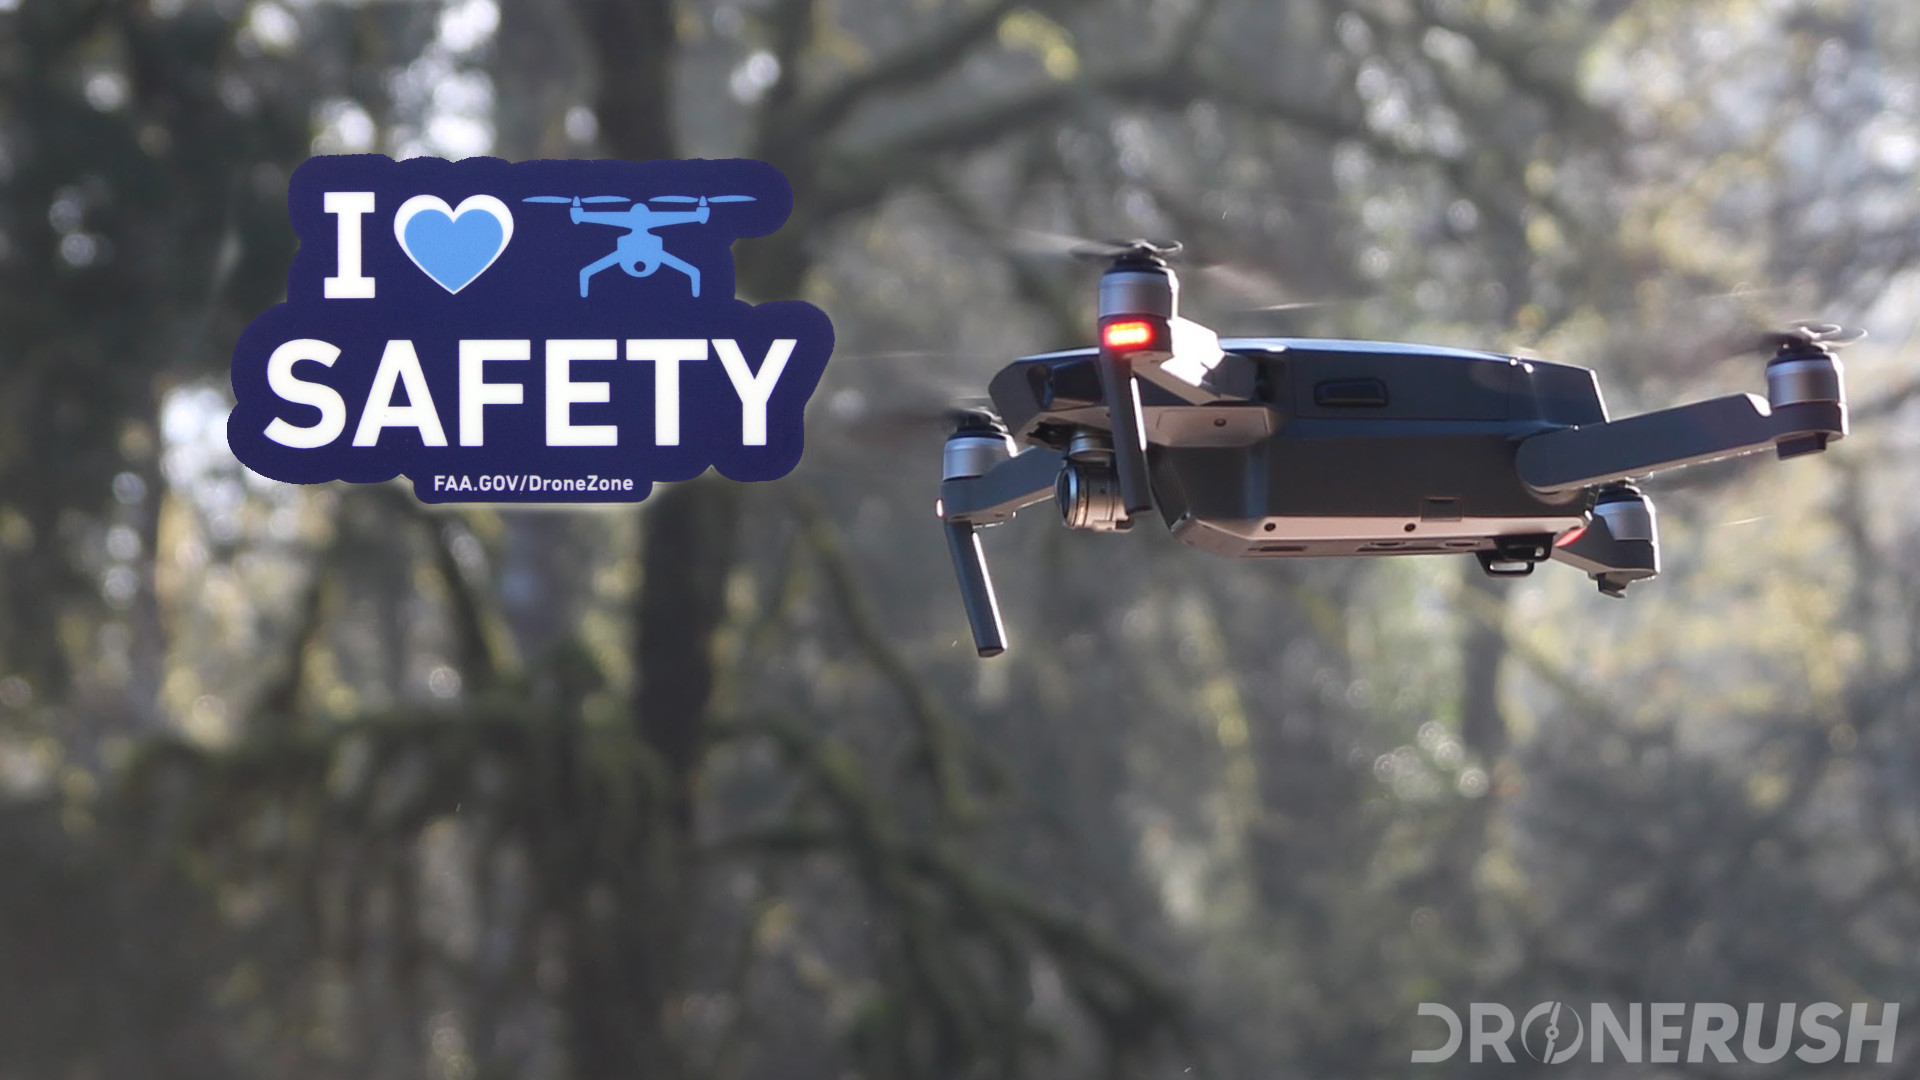 You need to register your drone with the FAA before you fly